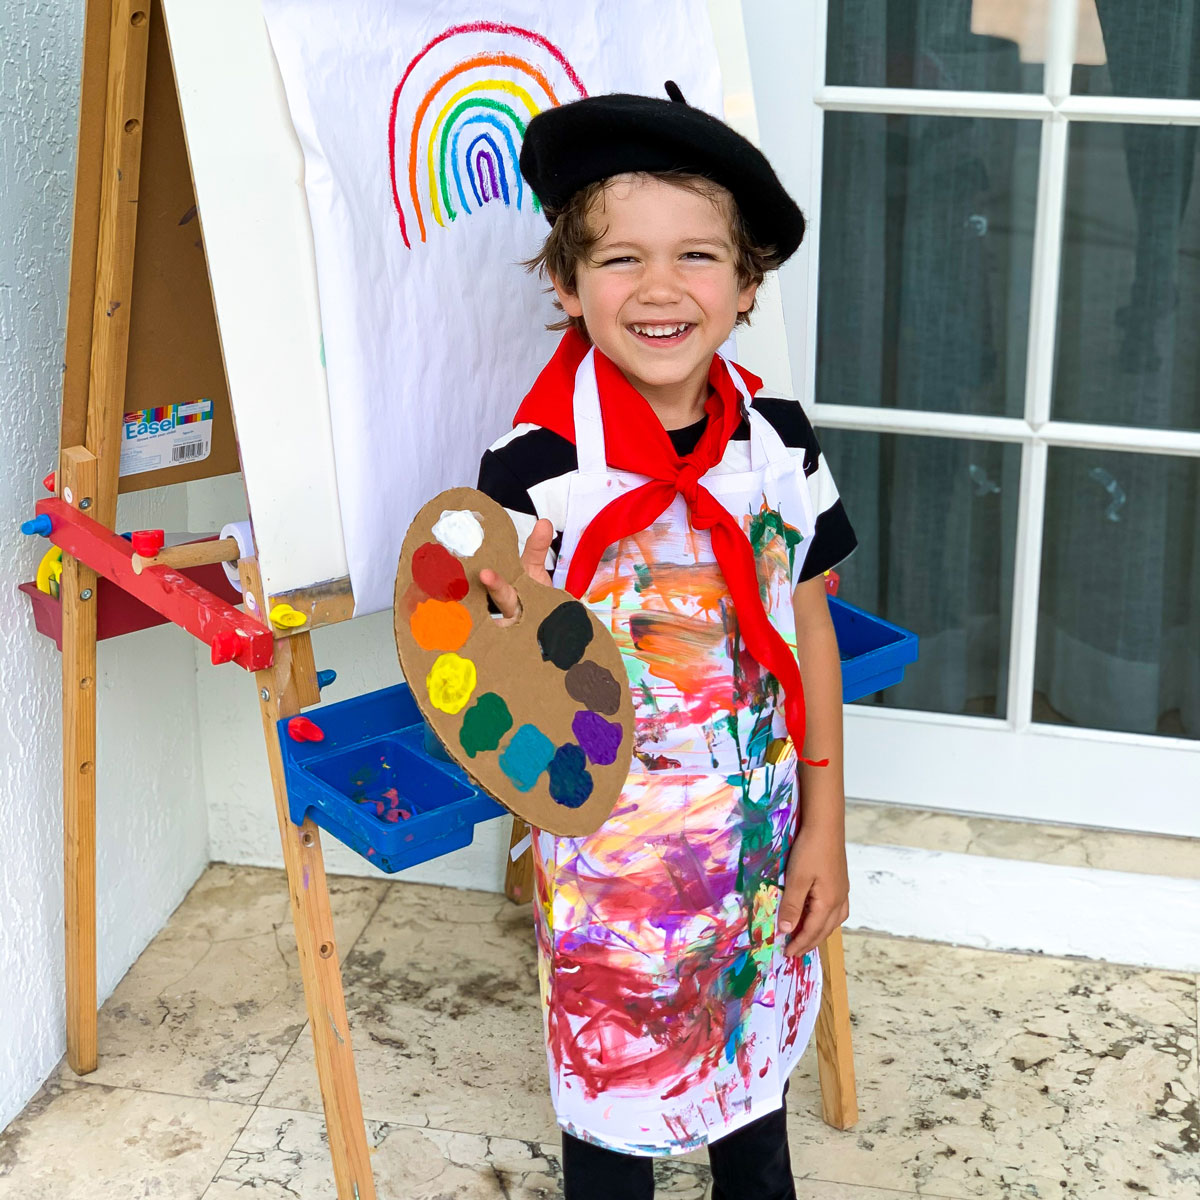 DIY Artist Costume – Easy and Budget-Friendly Dress Up